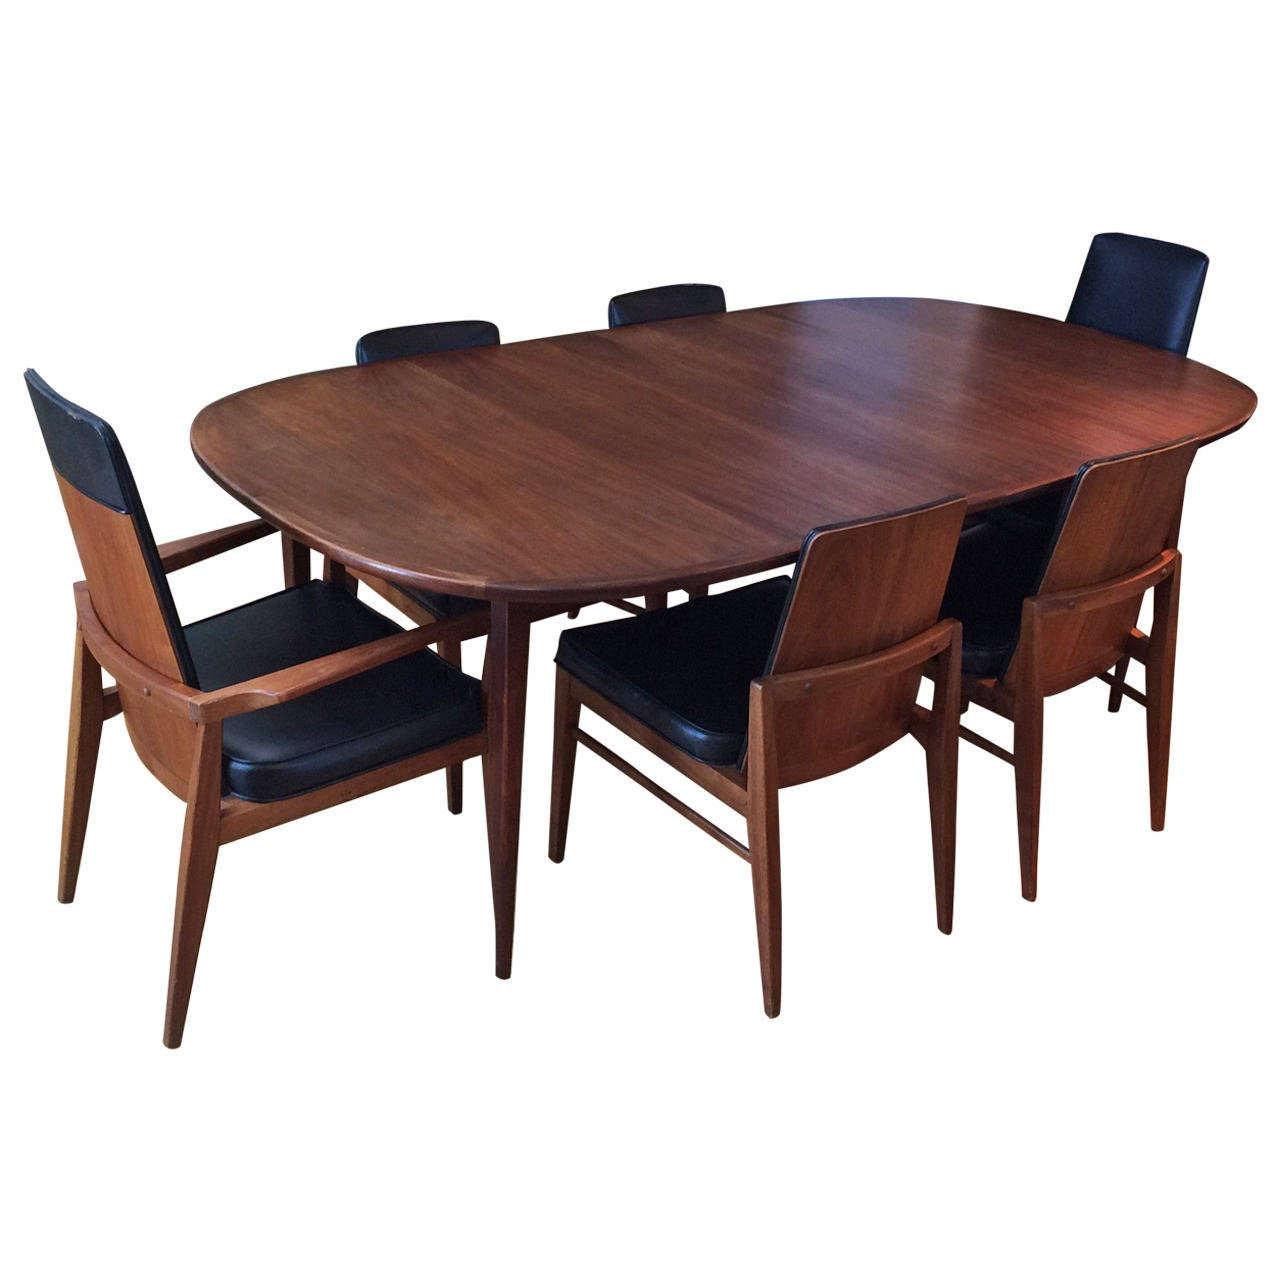 Mid century modern walnut dining set at 1stdibs for Mid century modern dining rooms